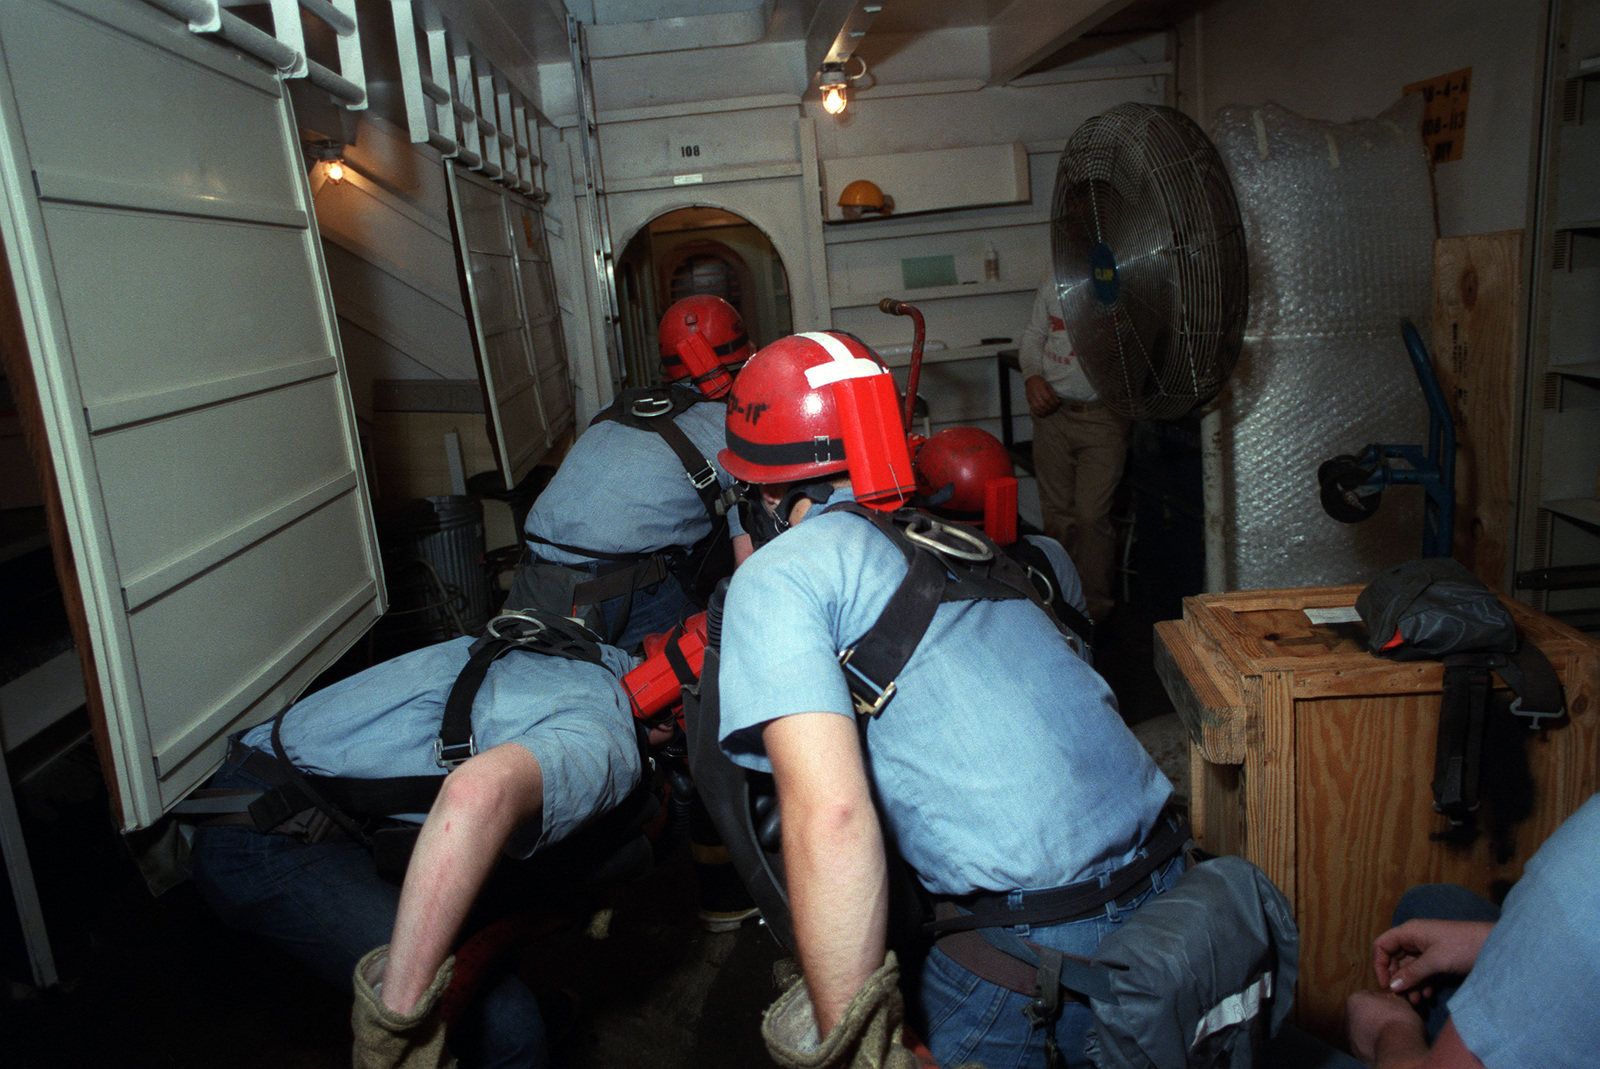 Damage control personnel wearing oxygen breathing apparatuses advance through a compartment during a firefighting drill on board the US Navy (USN) Nuclear-powered Aircraft Carrier USS DWIGHT D. EISENHOWER (CVN 69)